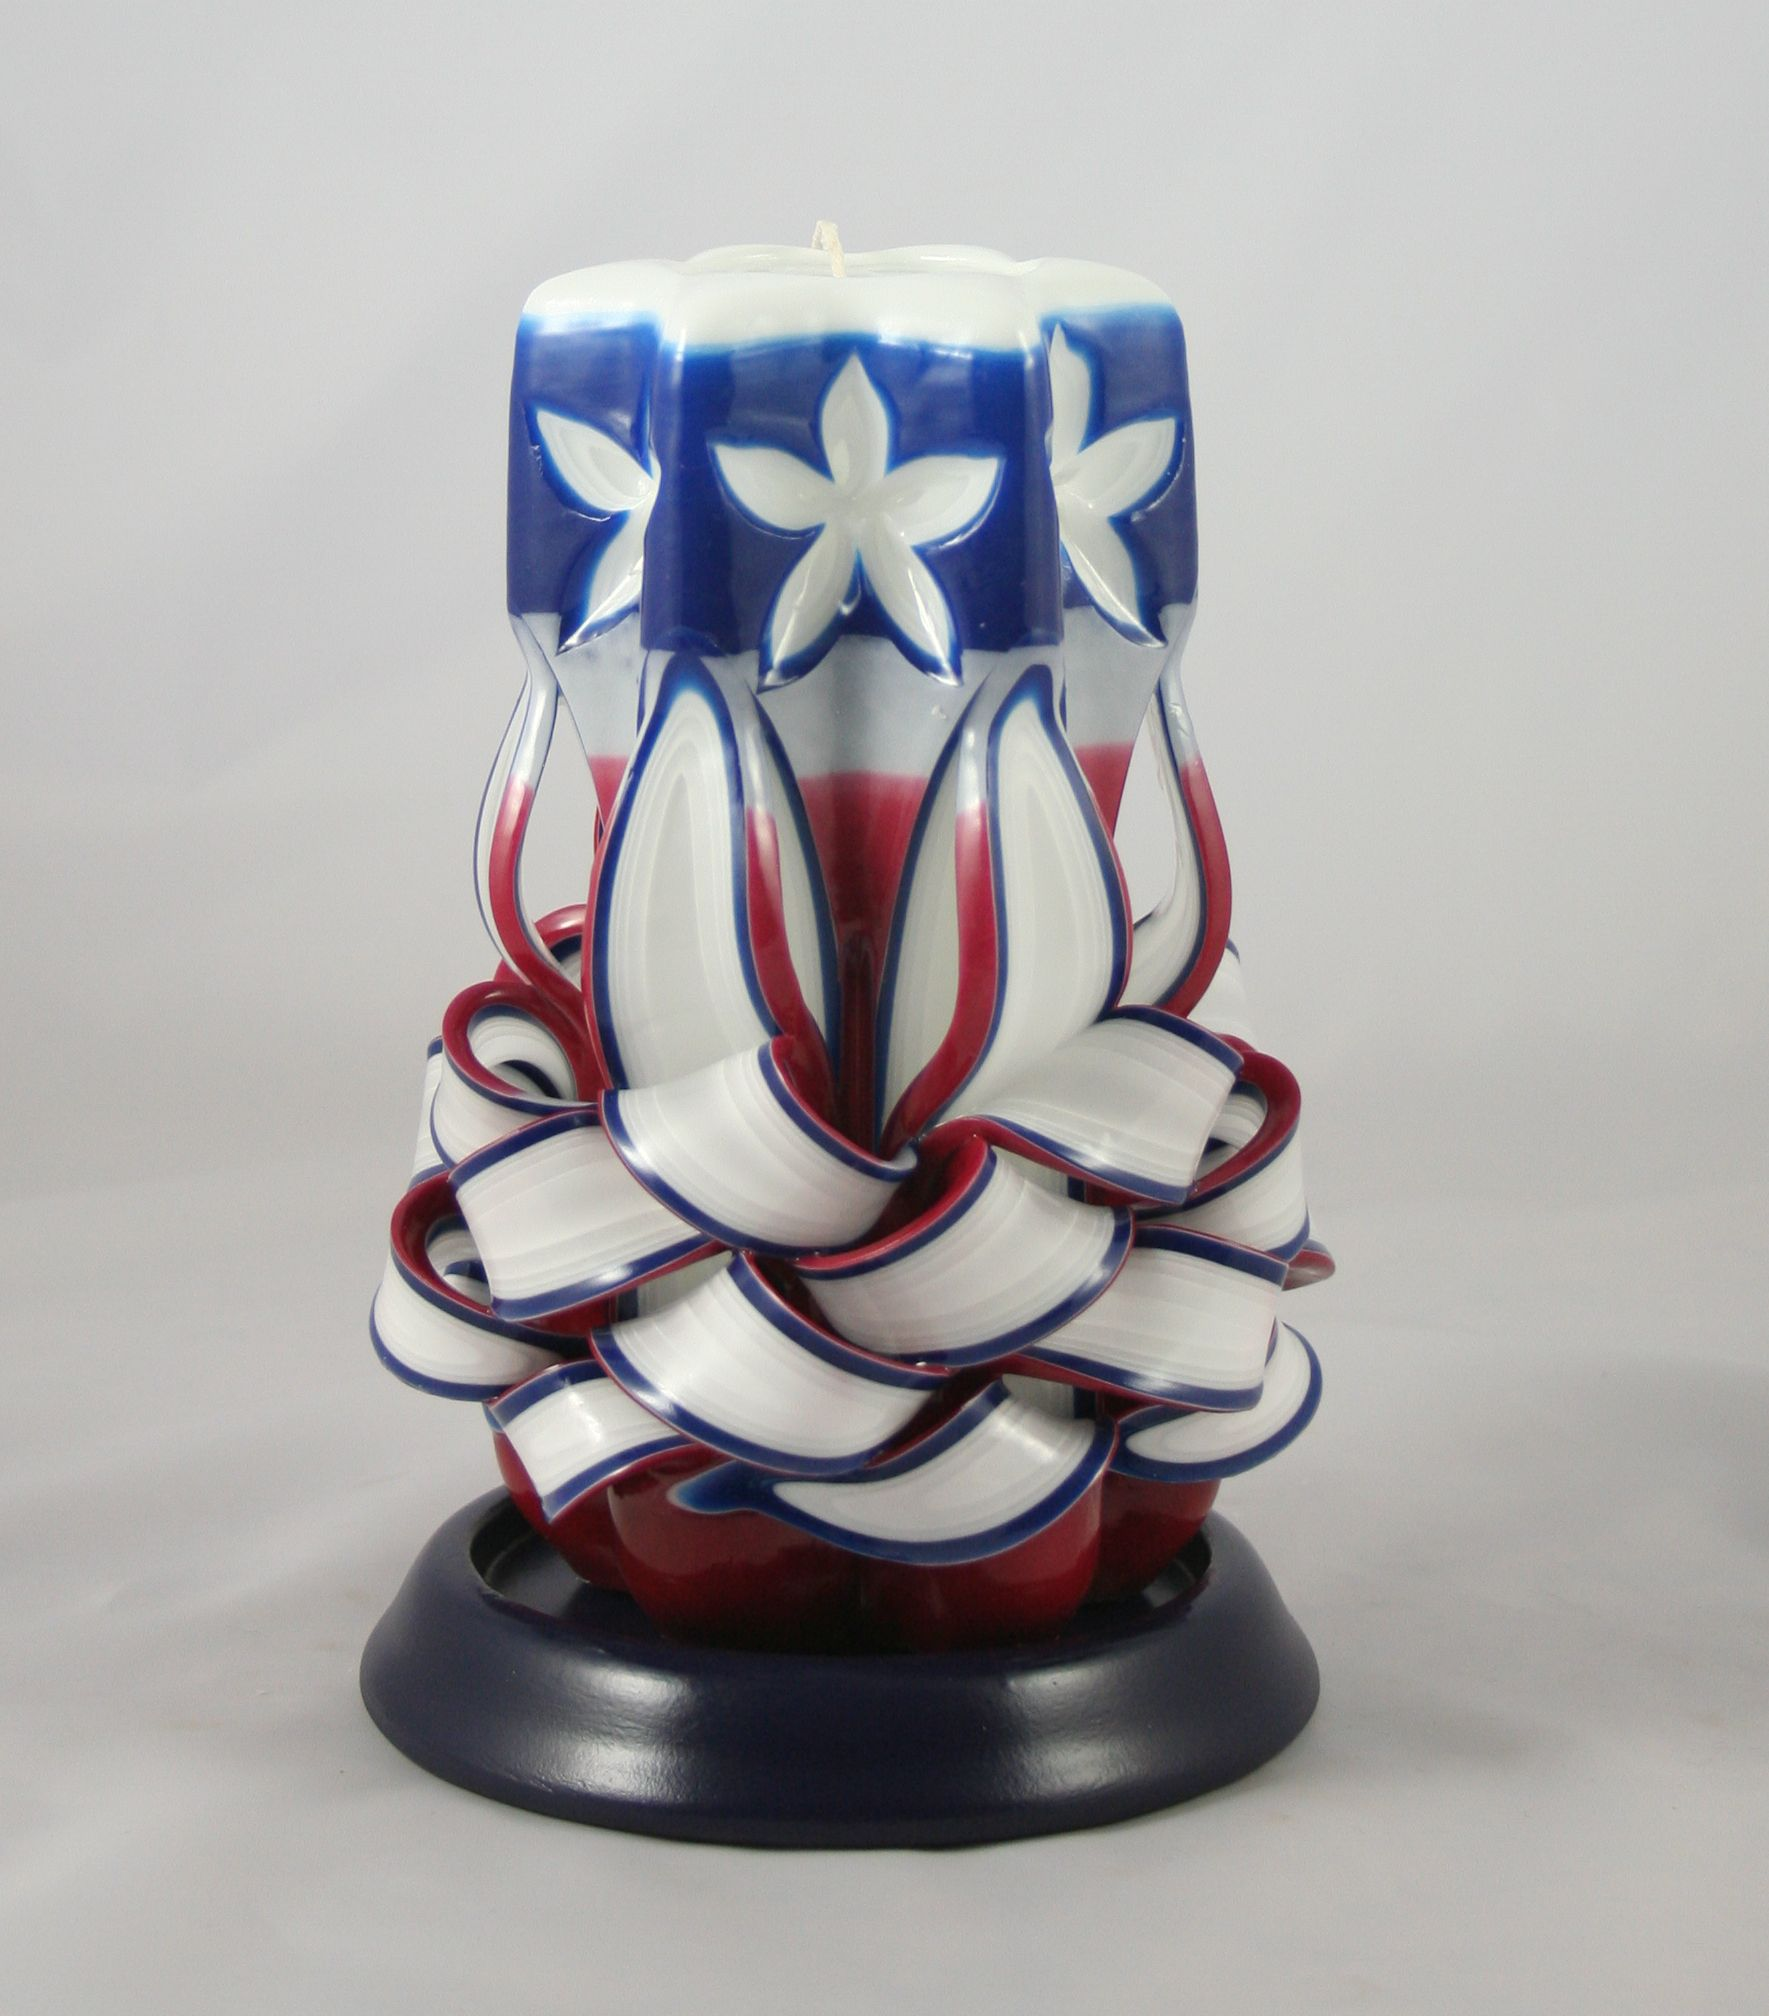 Decorative Candles For Sale Patriot Holland House Candles Holland House Candles